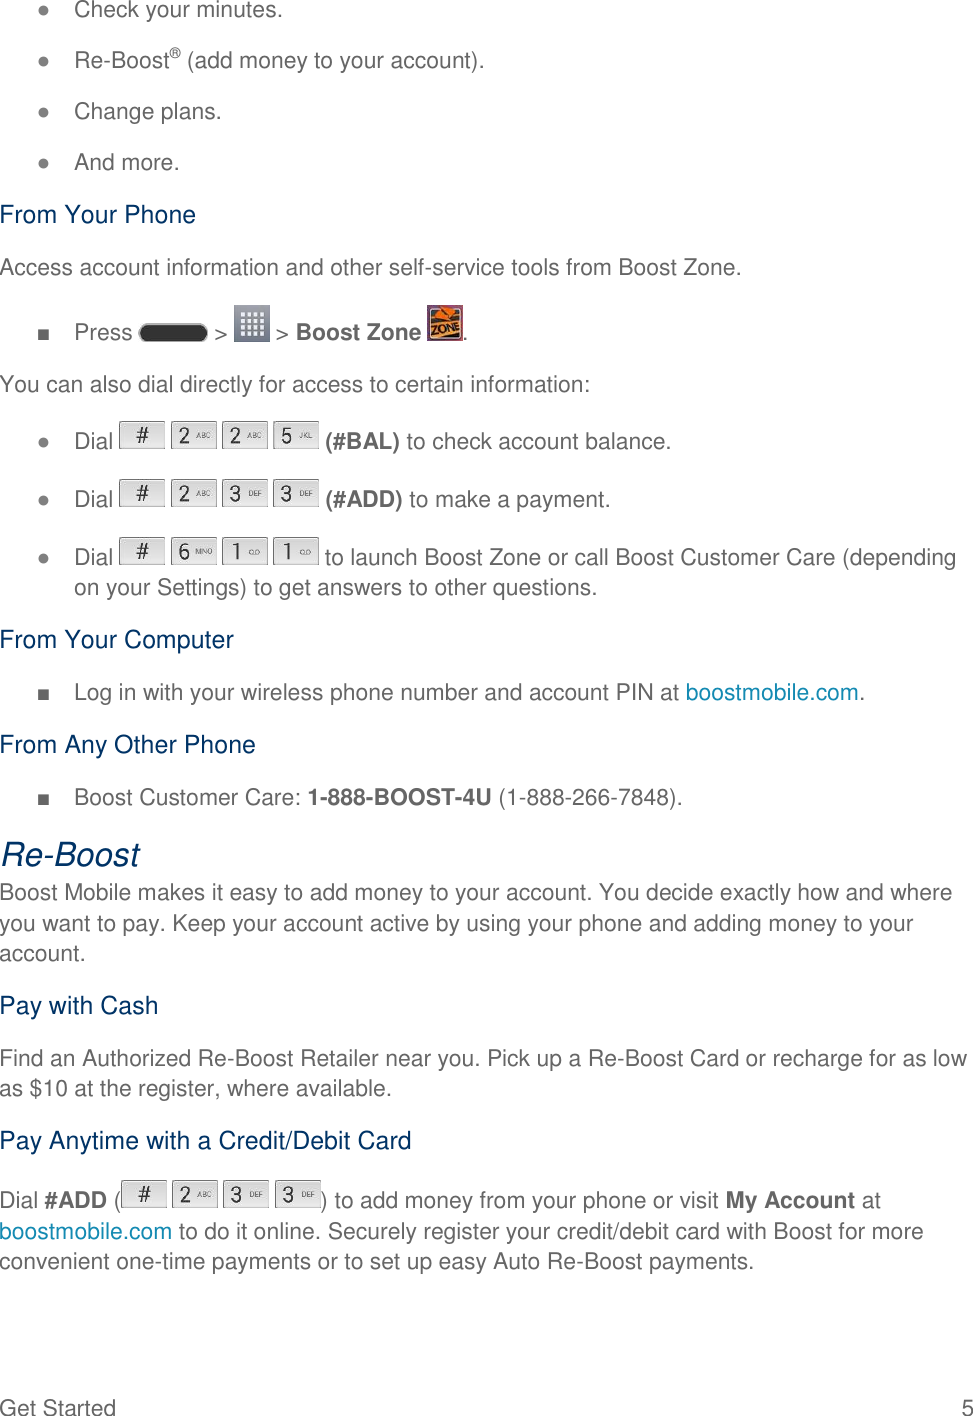 Lg Ls620 Boost Mobile User Guide